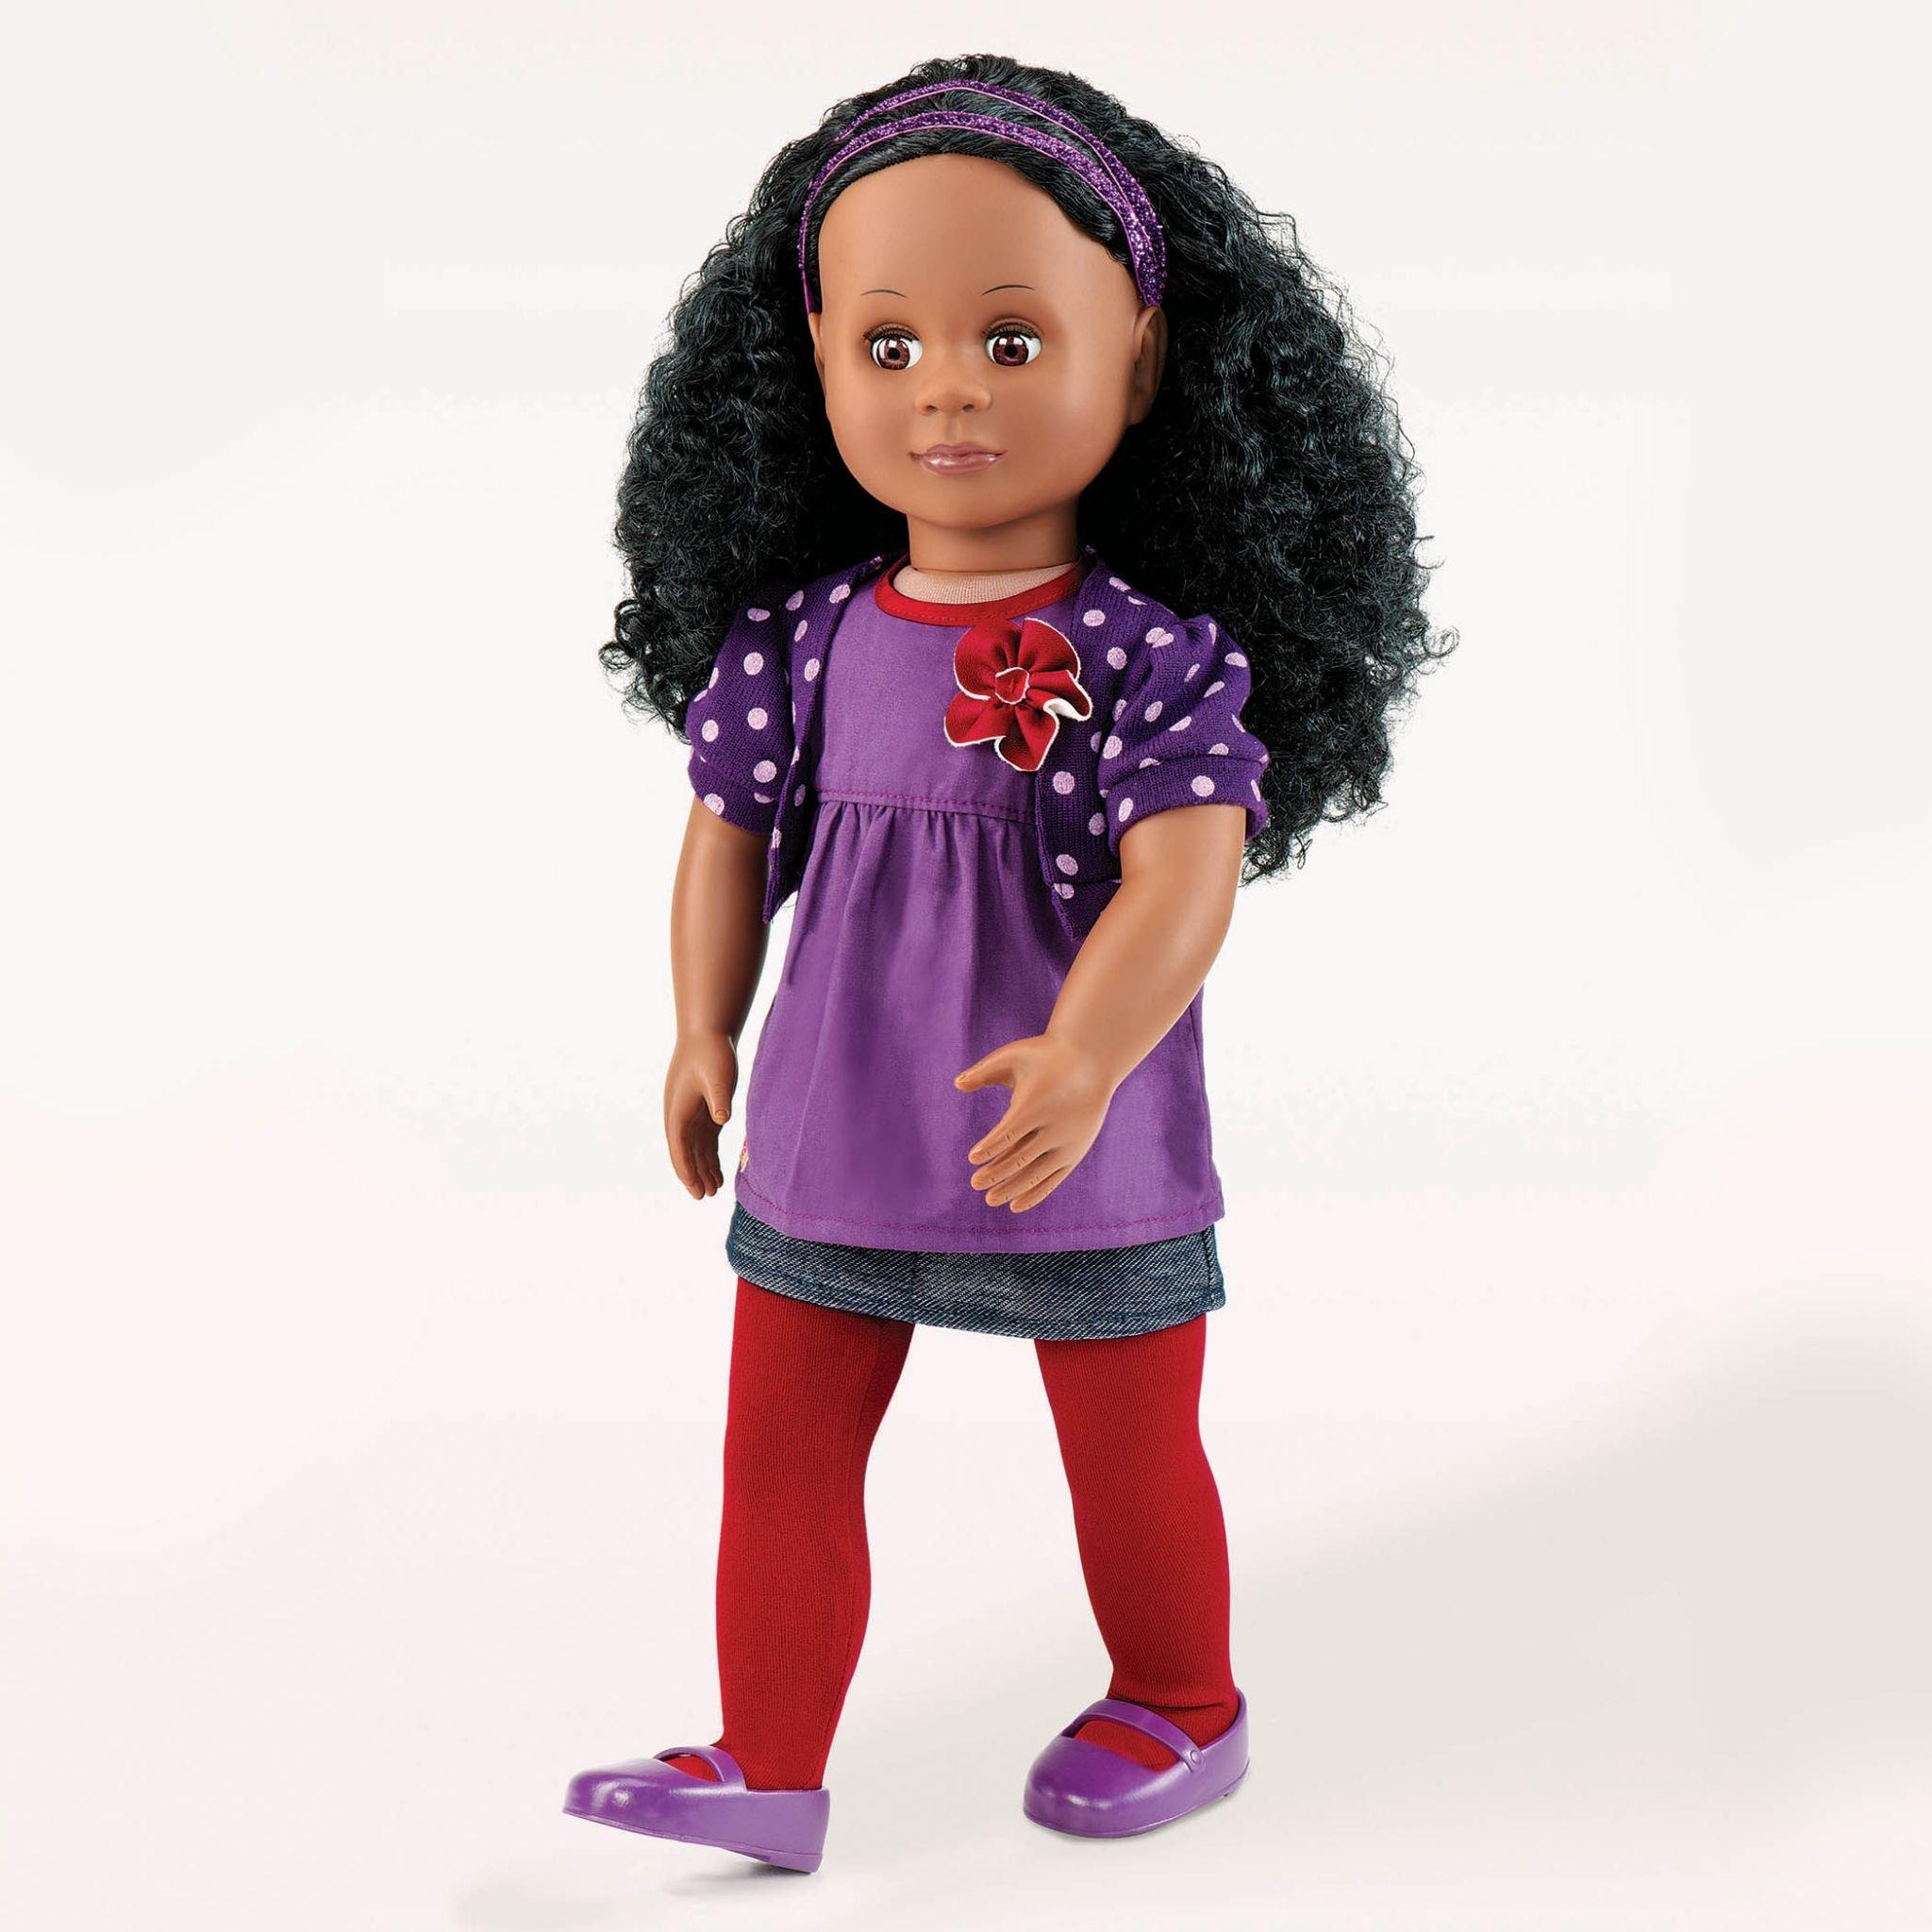 Abrianna our generation black doll